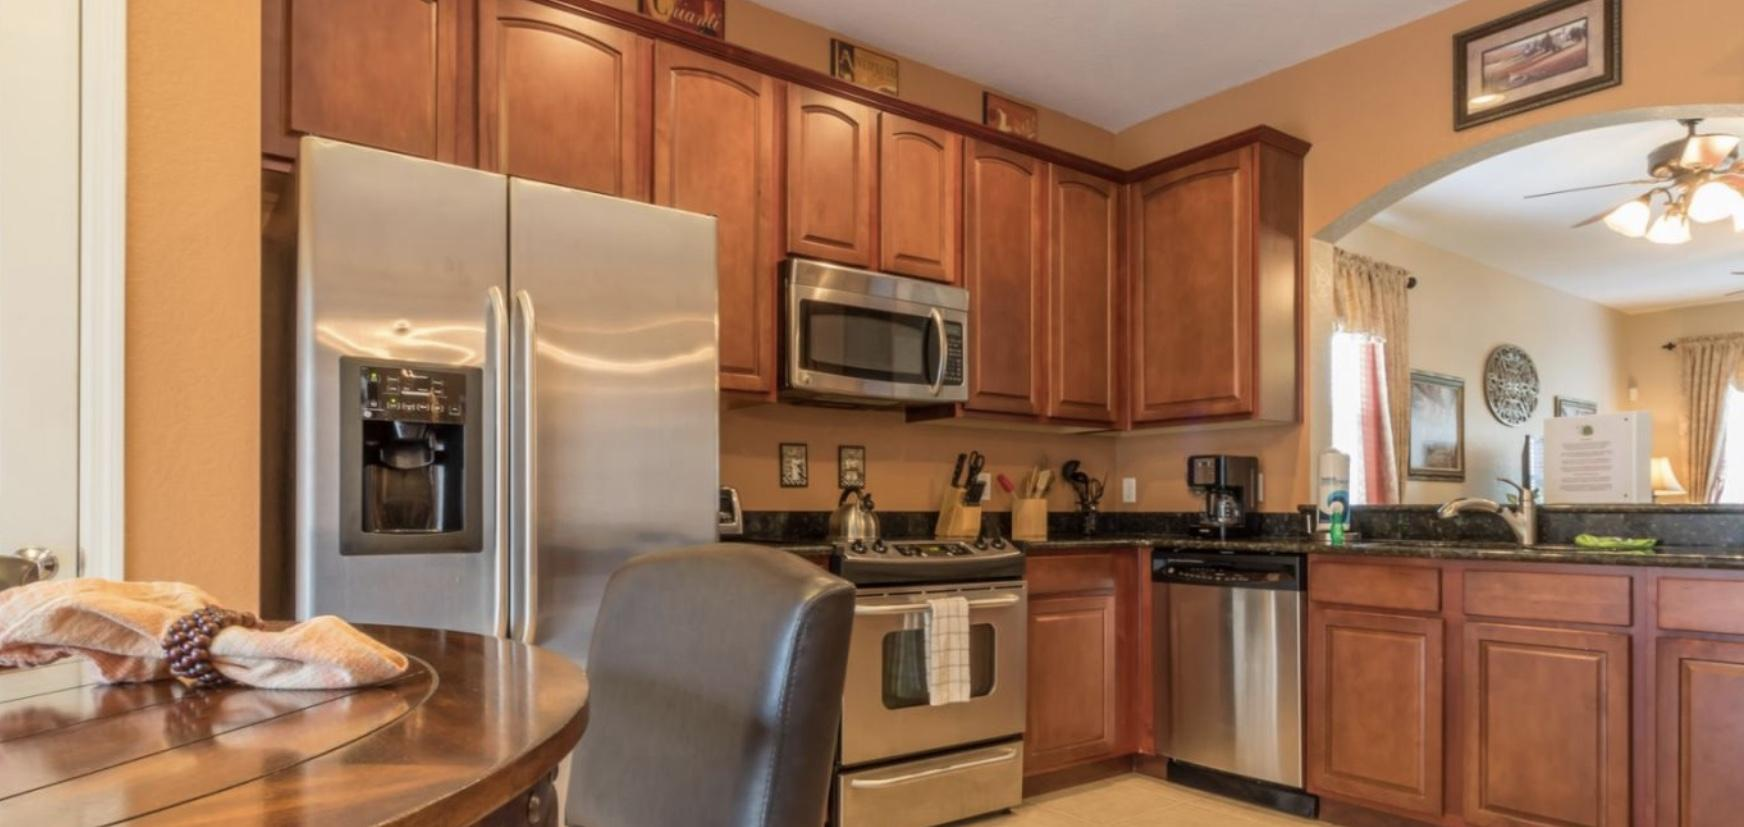 Upgraded kitchen with all SS appliances